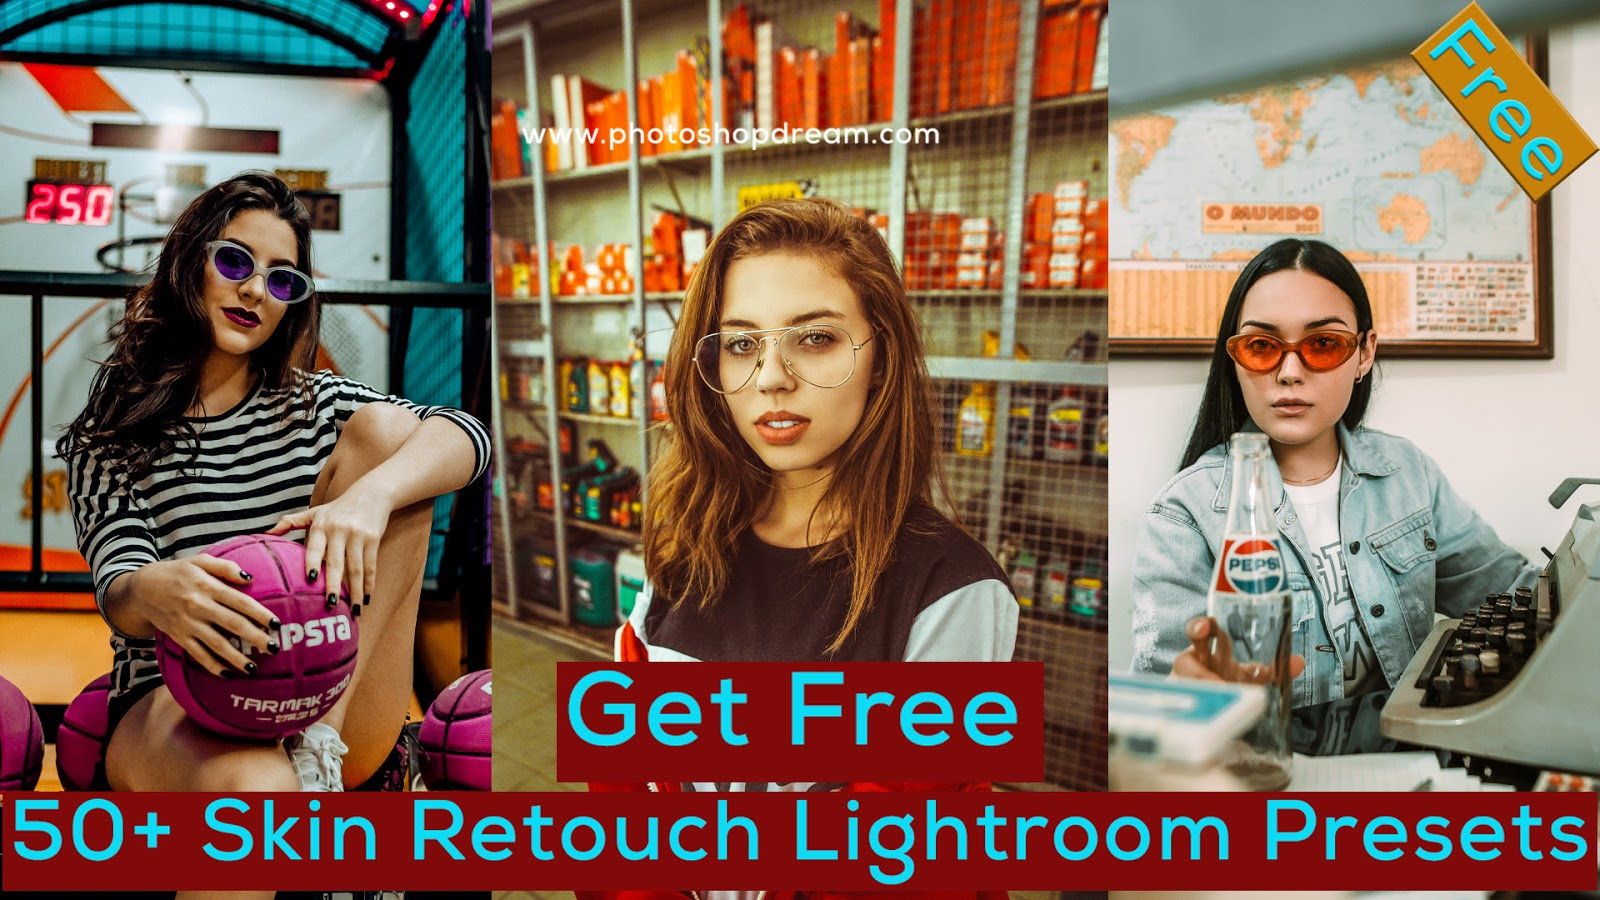 Get Free 50+ Skin Retouch Lightroom Presets - photoshop dream